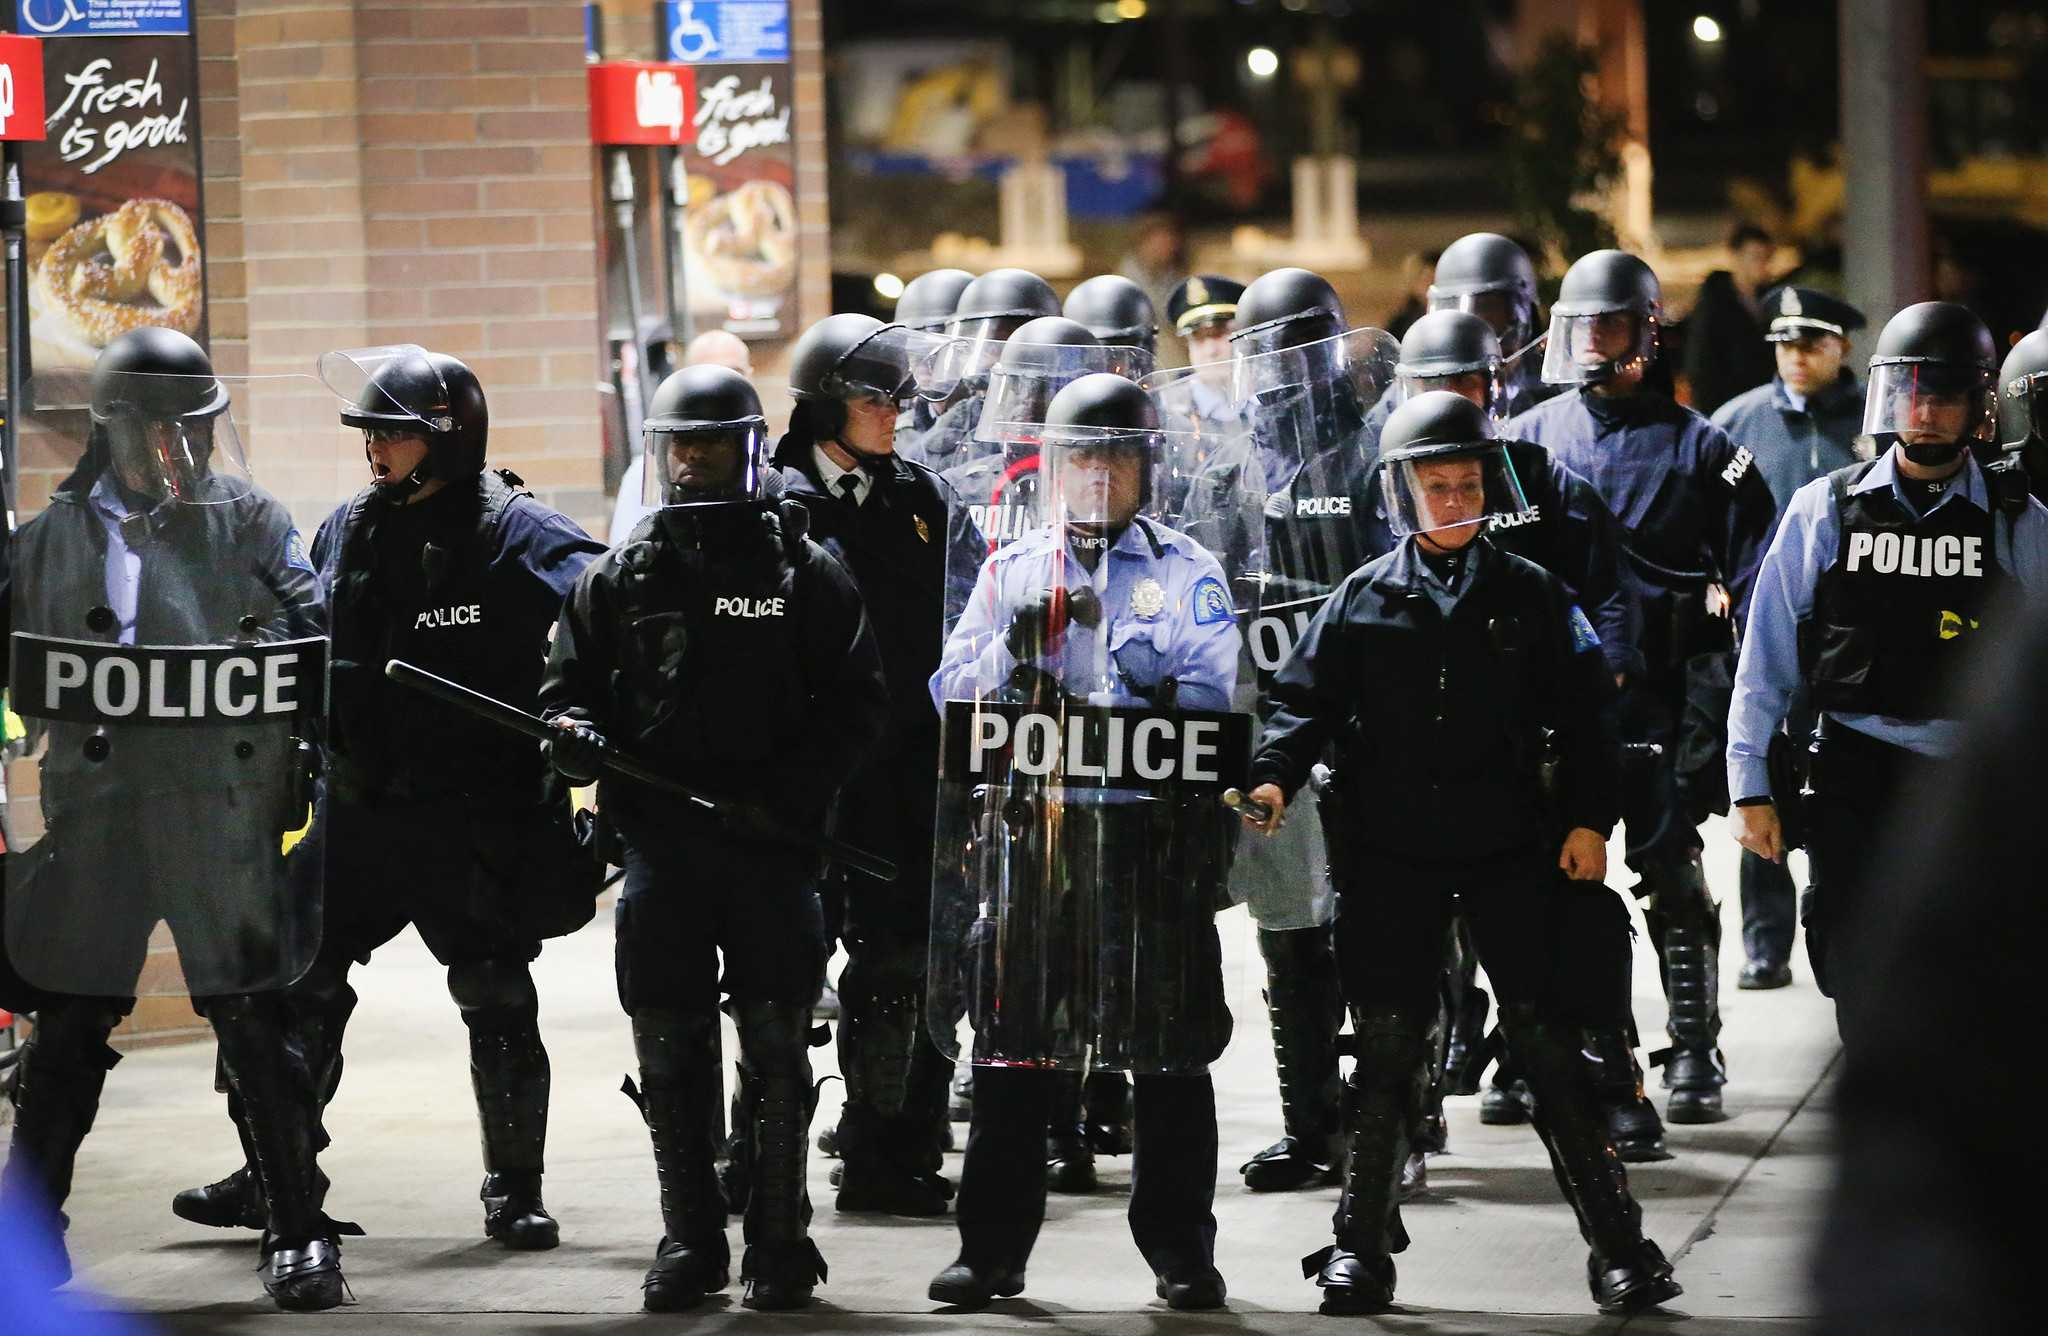 ST LOUIS, MO - OCTOBER 12:  Demonstrators protesting the killings of 18-year-olds Michael Brown by a Ferguson, Missouri Police officer and Vonderrit Myers Jr. by an off duty St. Louis police officer are confronted by police wearing riot gear on October 12, 2014 in St Louis, Missouri. The St. Louis area has been struggling to heal since riots erupted in suburban Ferguson following Brown's death.  (Photo by Scott Olson/Getty Images) ** OUTS - ELSENT, FPG - OUTS * NM, PH, VA if sourced by CT, LA or MoD **